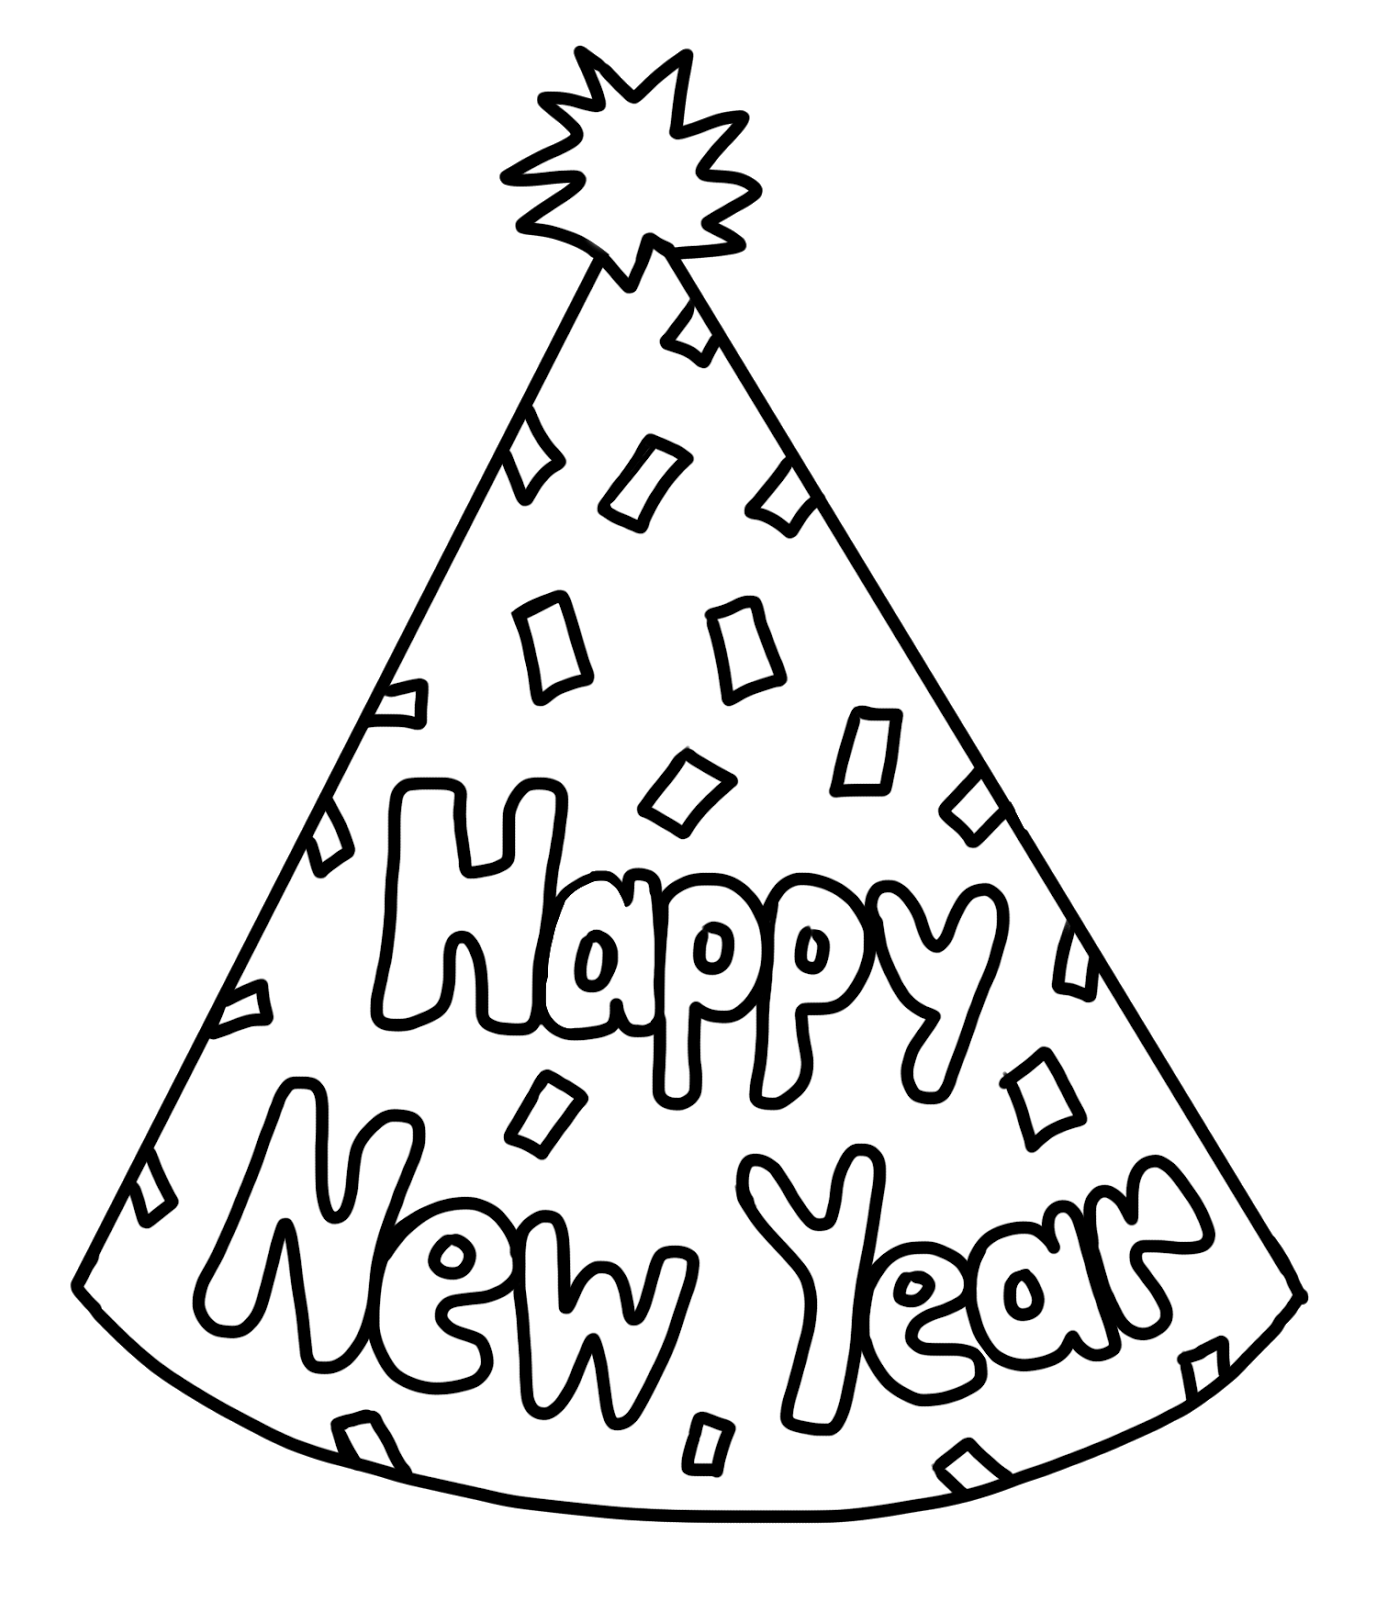 Party Hat Clipart Black And White Jpg Torotot New Year Clip Art New Years Horn Clipart 243323